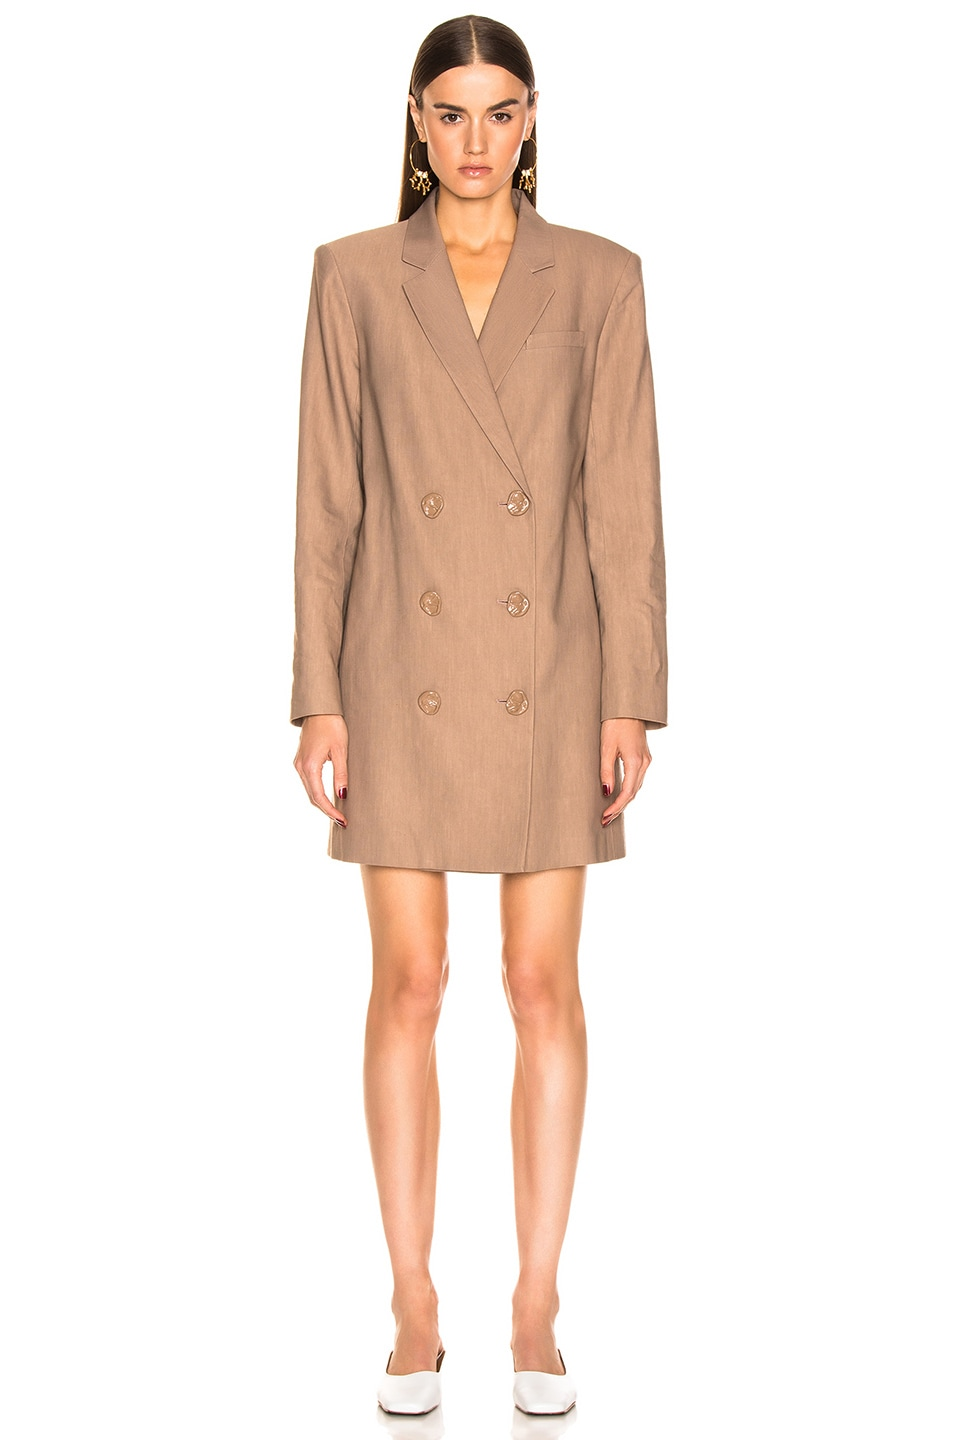 Image 2 of Tibi Linen Suiting Blazer Dress With Detachable Tie in Sable Brown